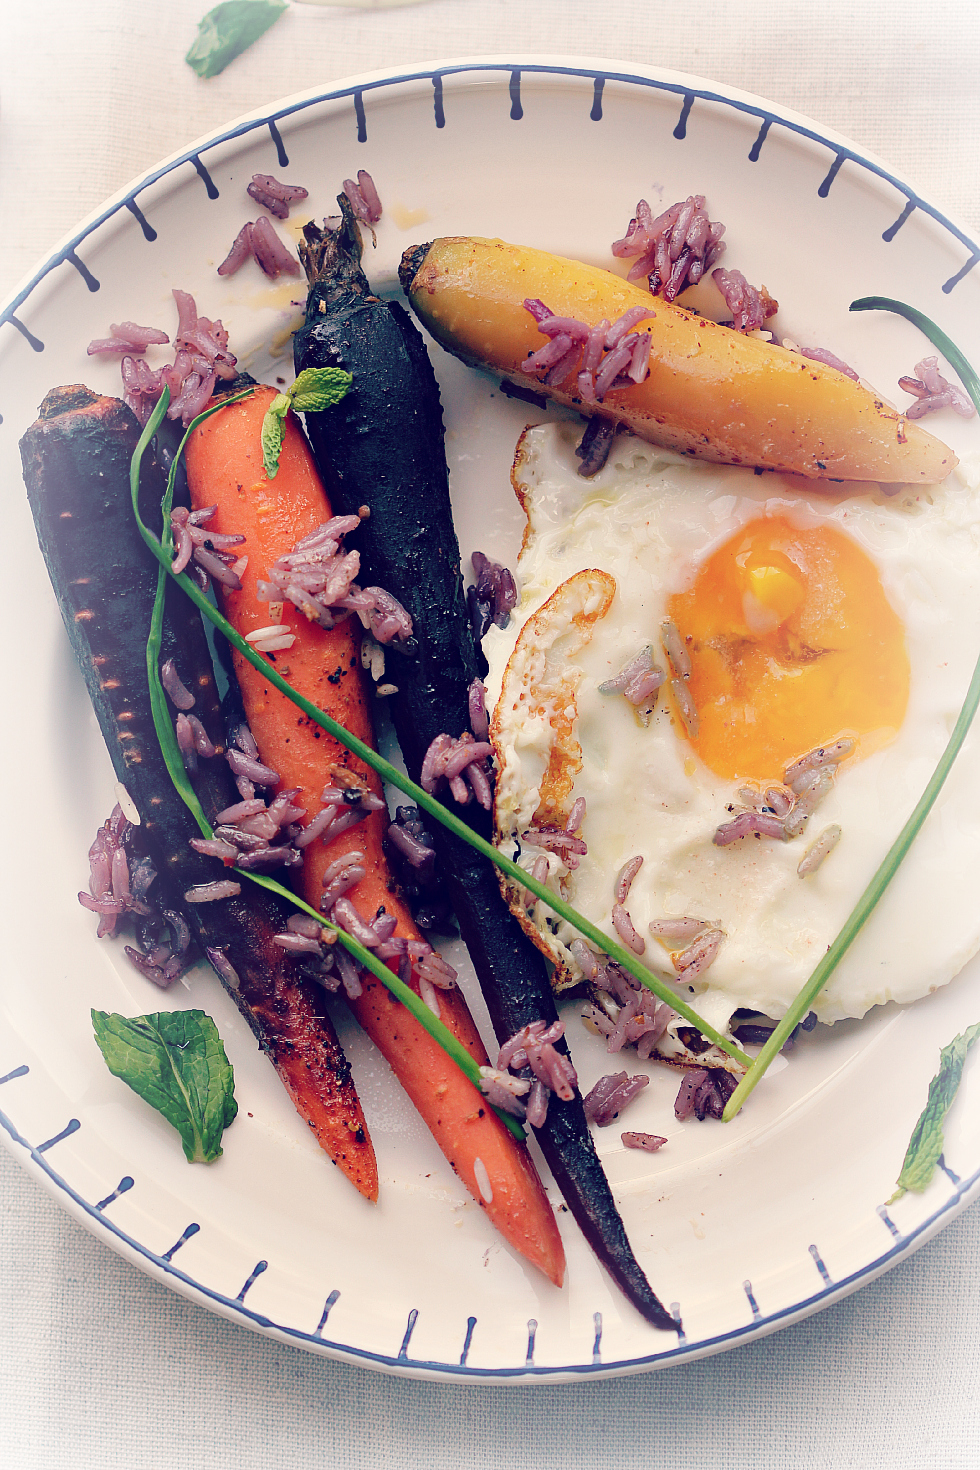 ©Braised Carrots and Rice with Egg by Dena T Bray